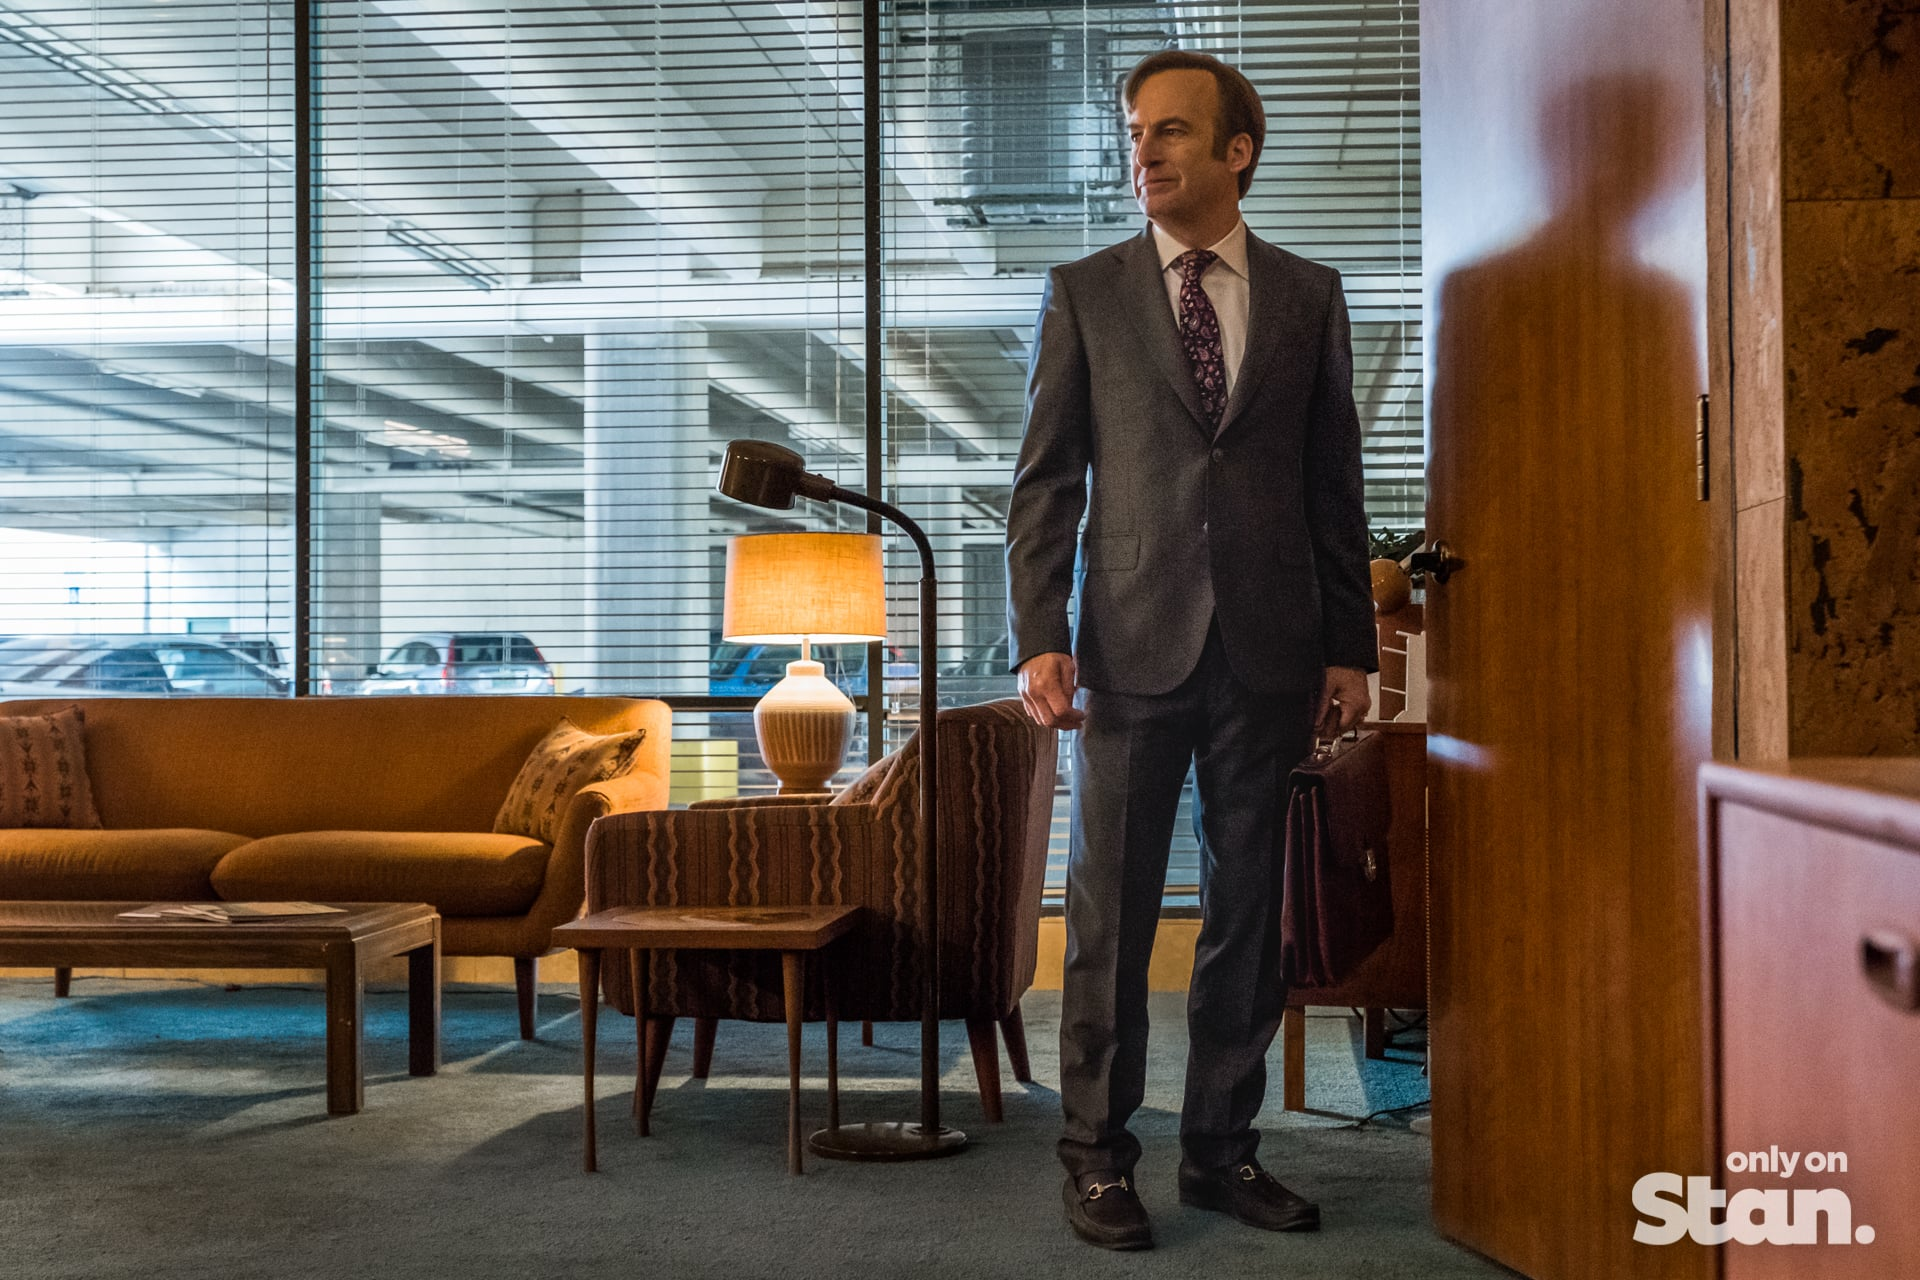 BETTER CALL SAUL - SEASON 4 - EPISODE 402